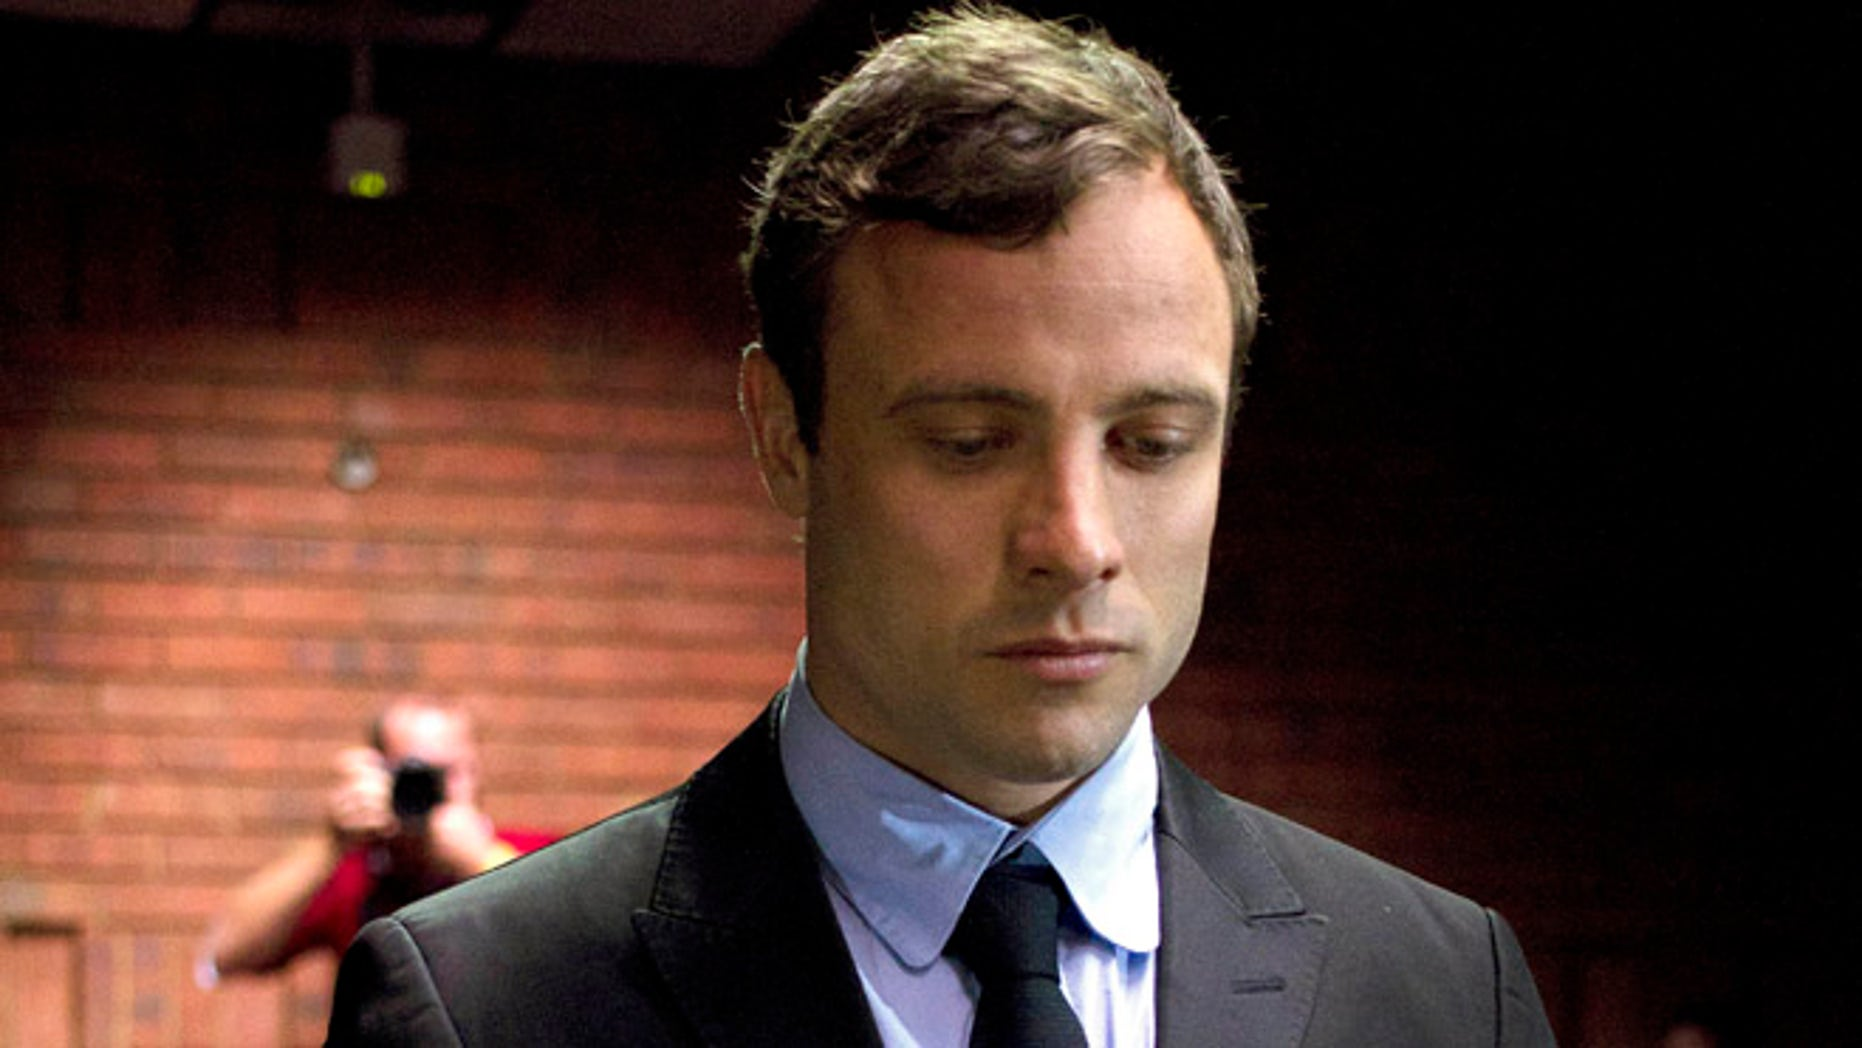 Aug. 19, 2013 Double-amputee Olympian Oscar Pistorius appears at the magistrates court to be indicted on charges of murder and illegal possession of ammunition for the shooting death of his girlfriend on Valentine's Day in Pretoria, South Africa.